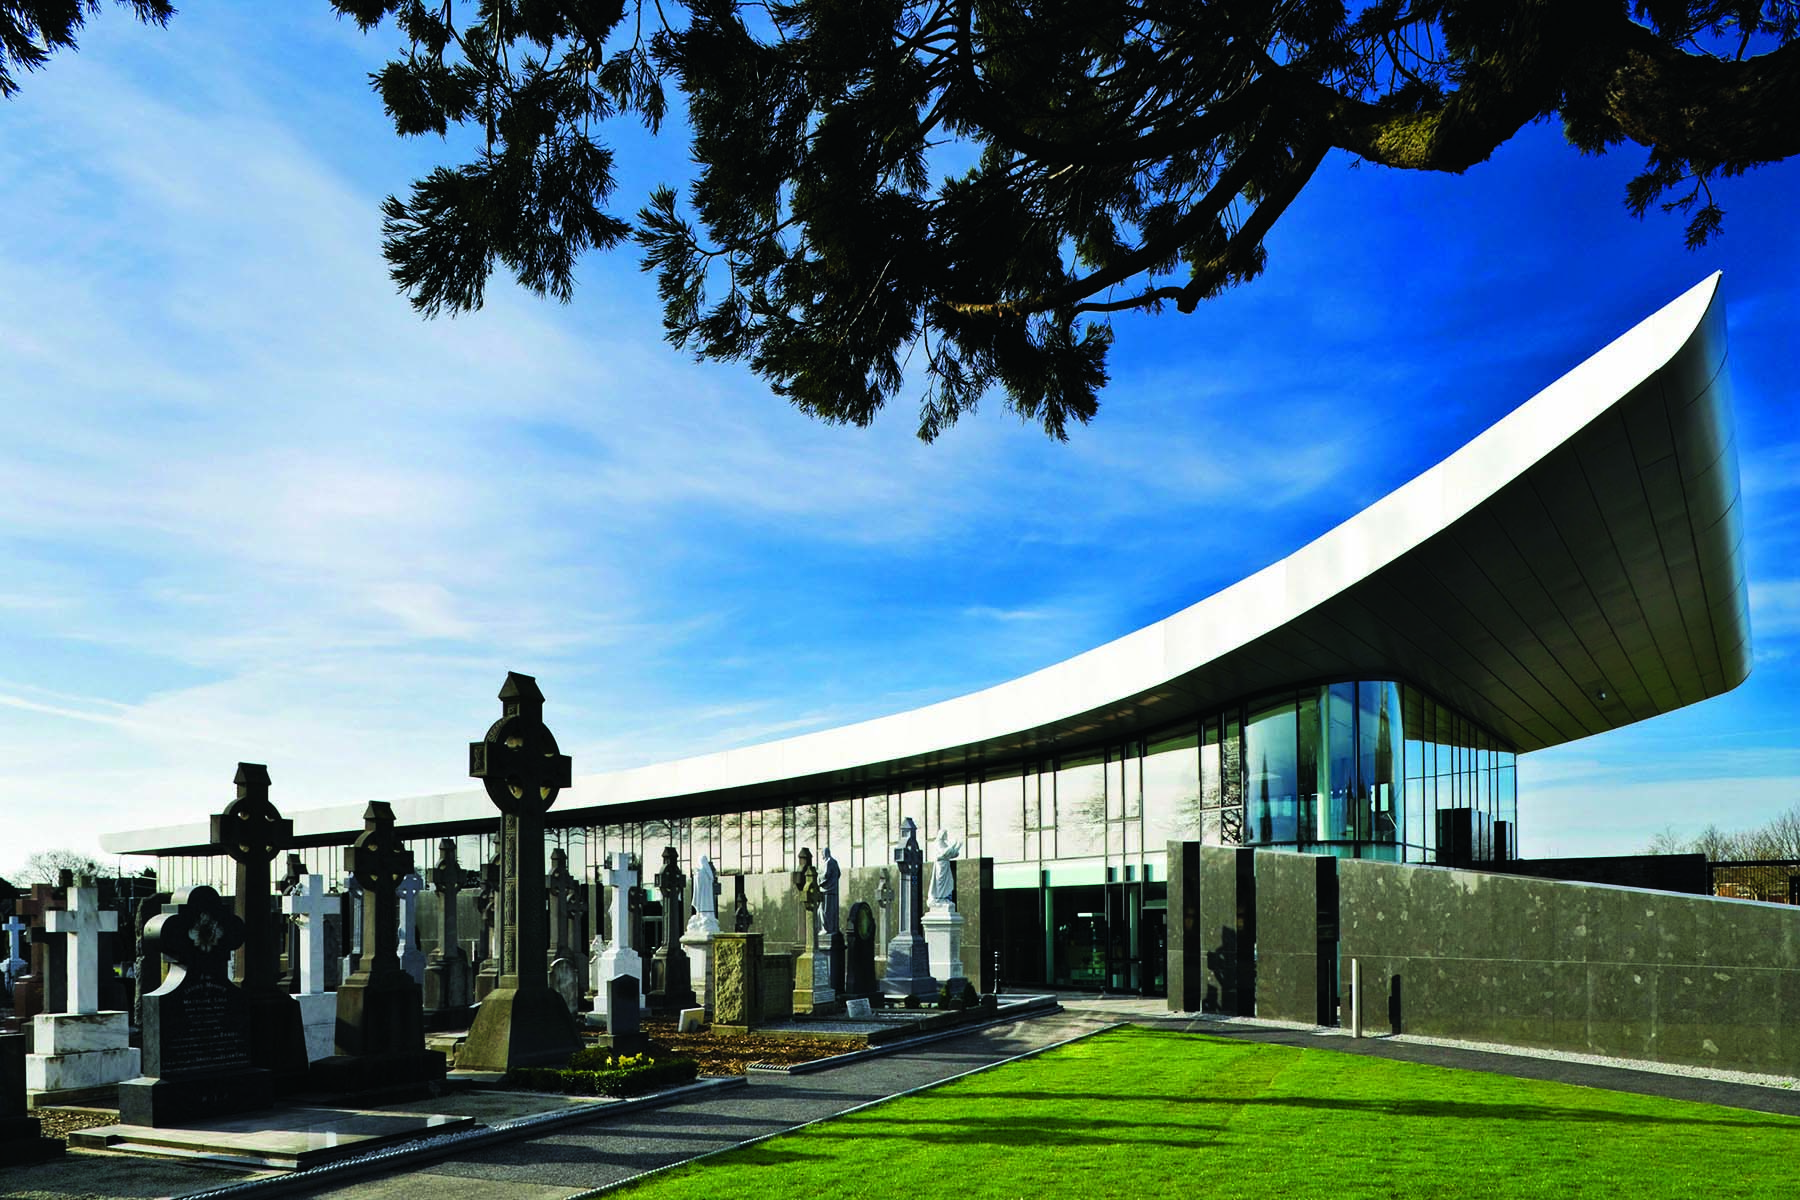 Glasnevin Cemetery, where many of those who took part in the Rising are buried.